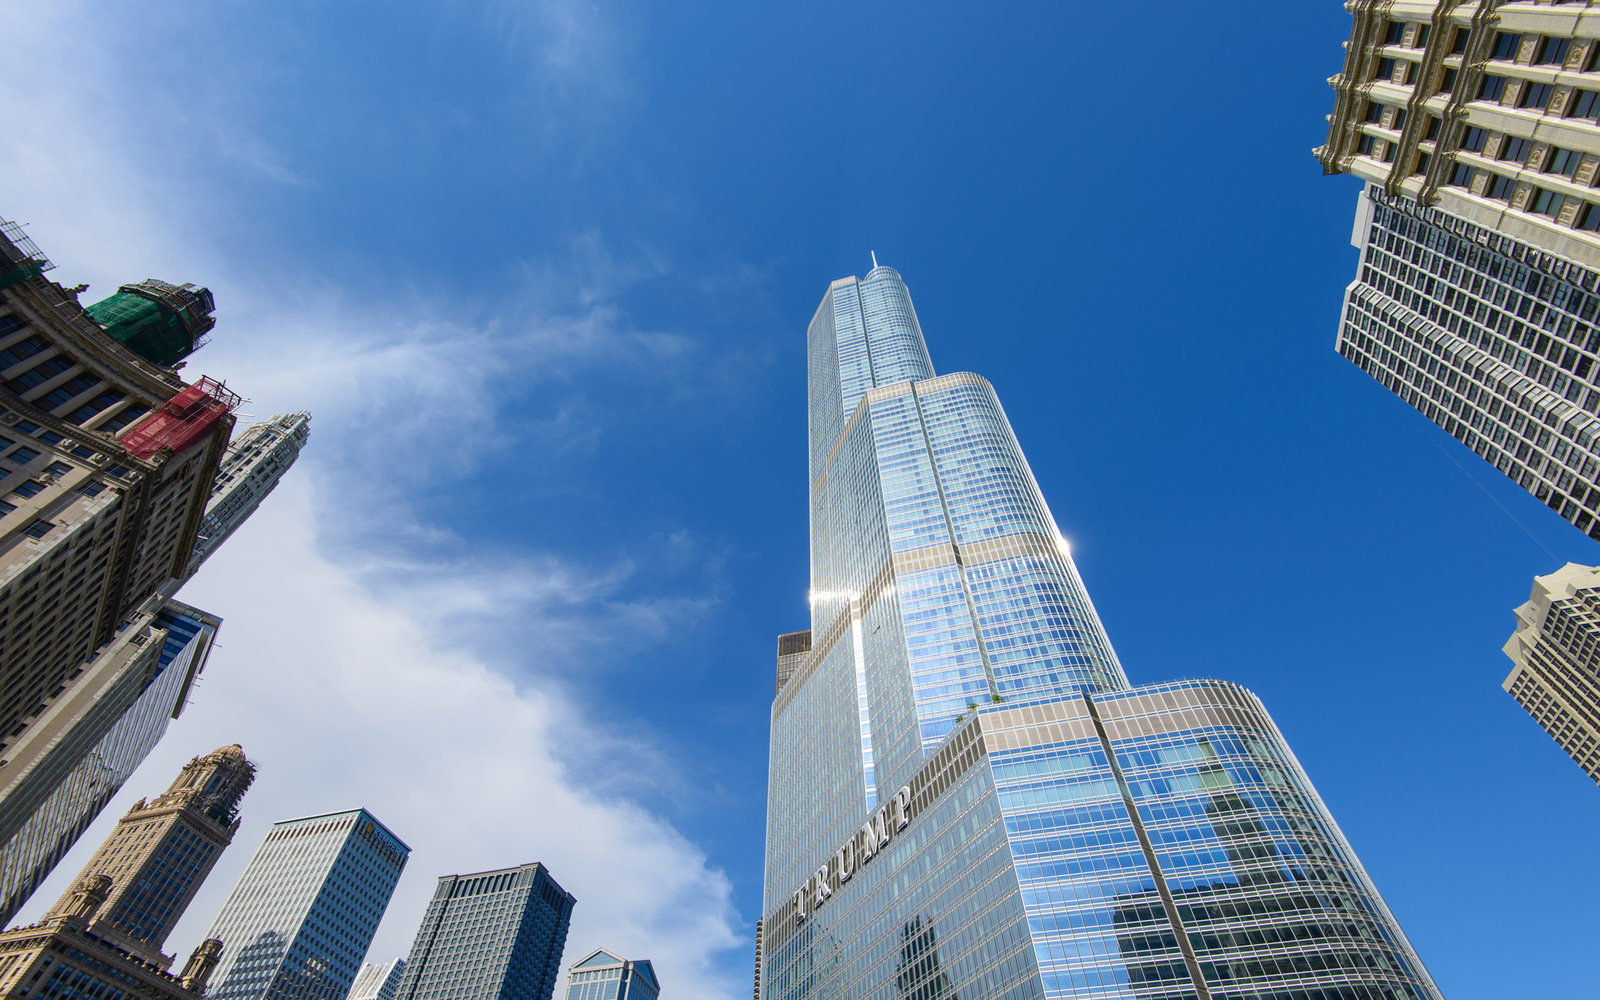 20. Trump International Hotel and Tower, Chicago (1,389 feet)